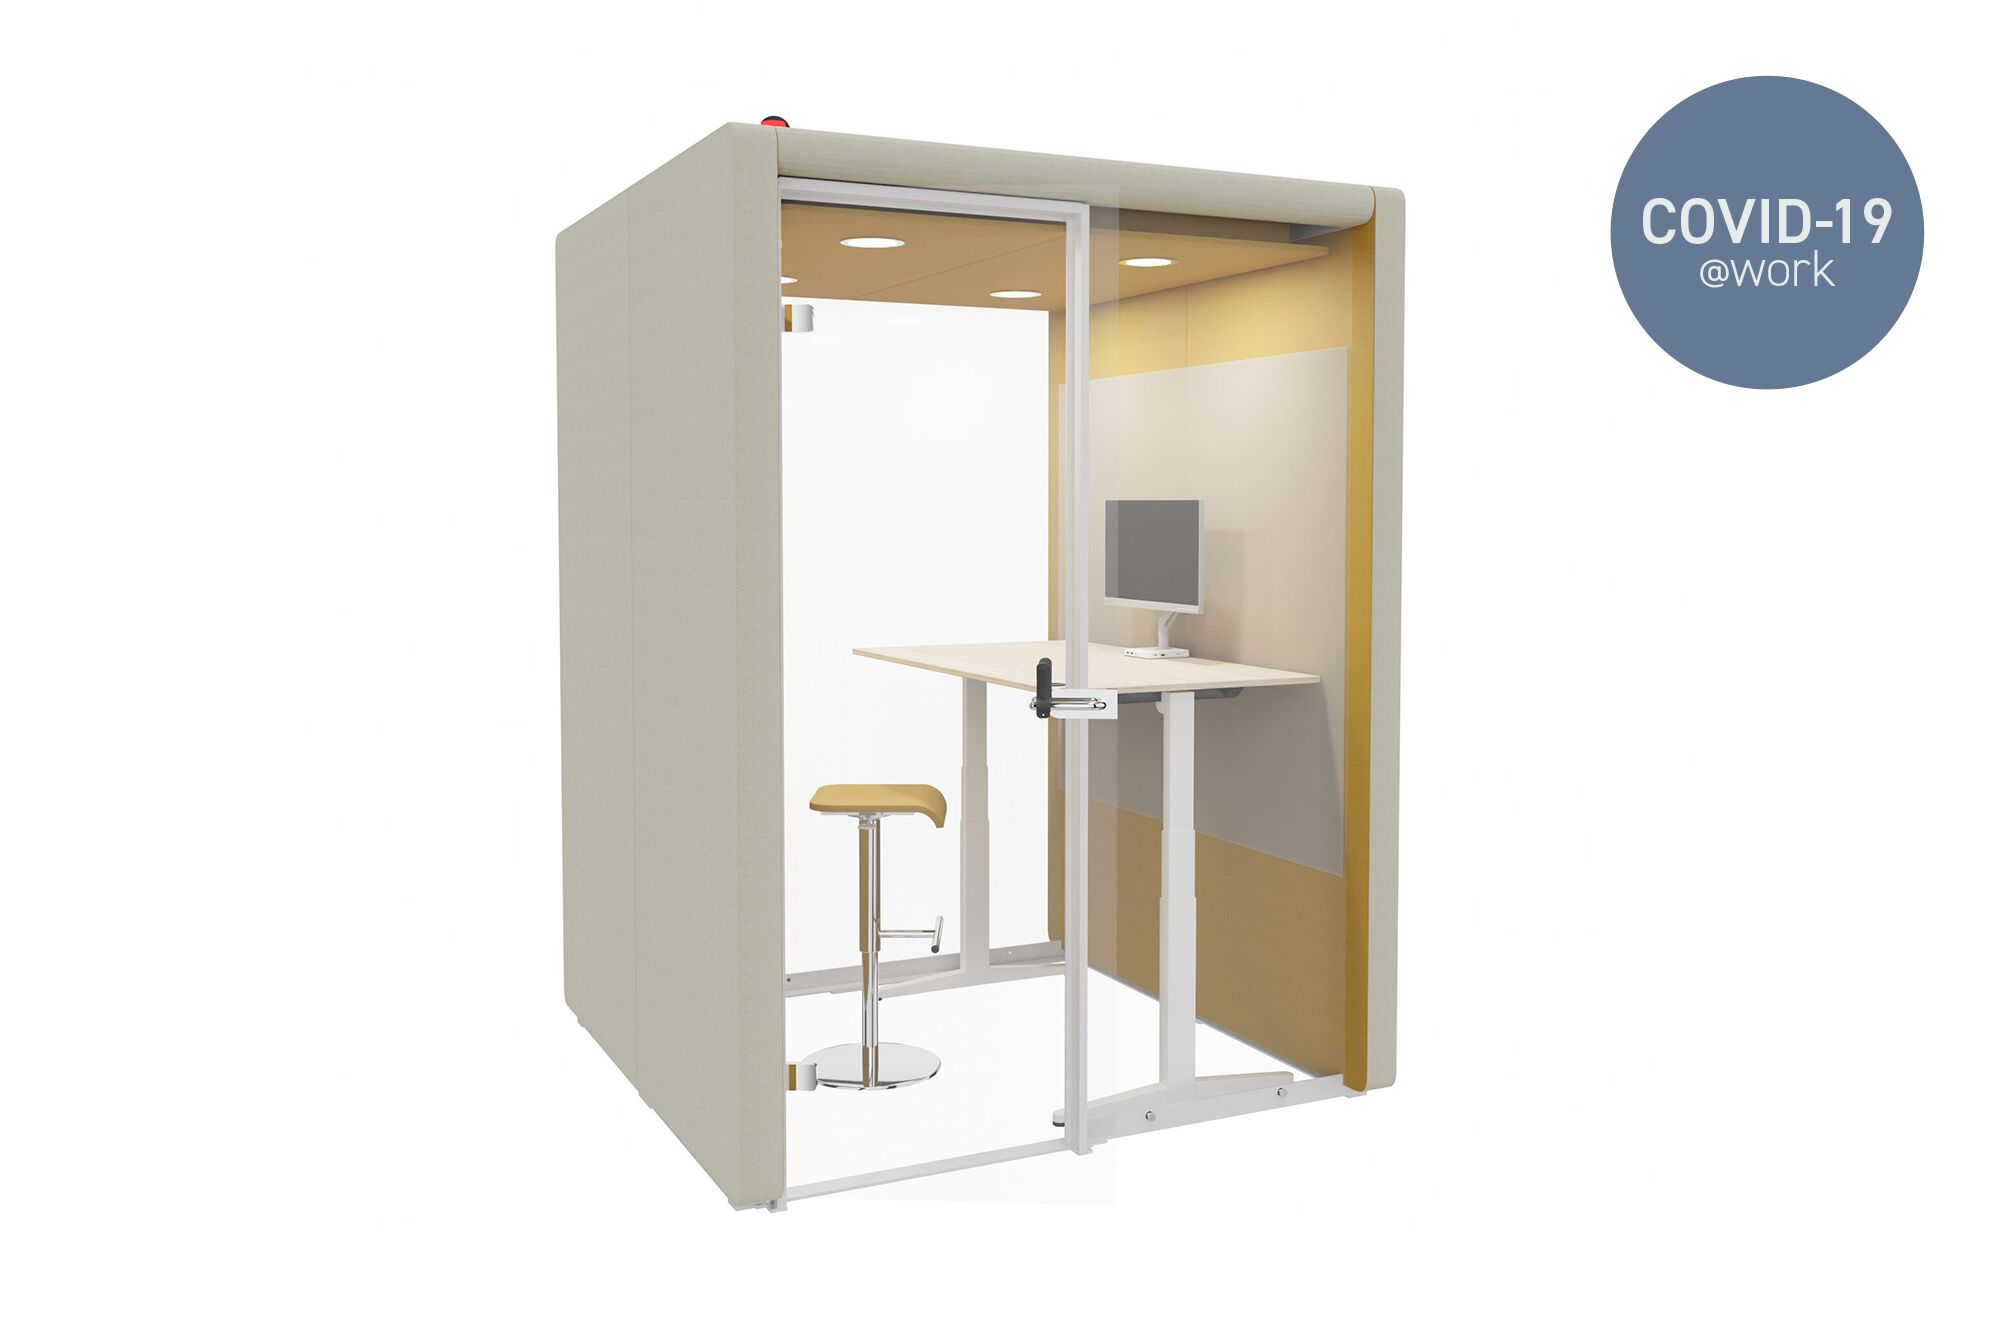 Large Royal Ahrend Flexbox space in space in beige with hand free door opener and balance desk with yellow barstool and occupancy indicator front left view with Covid 19 label